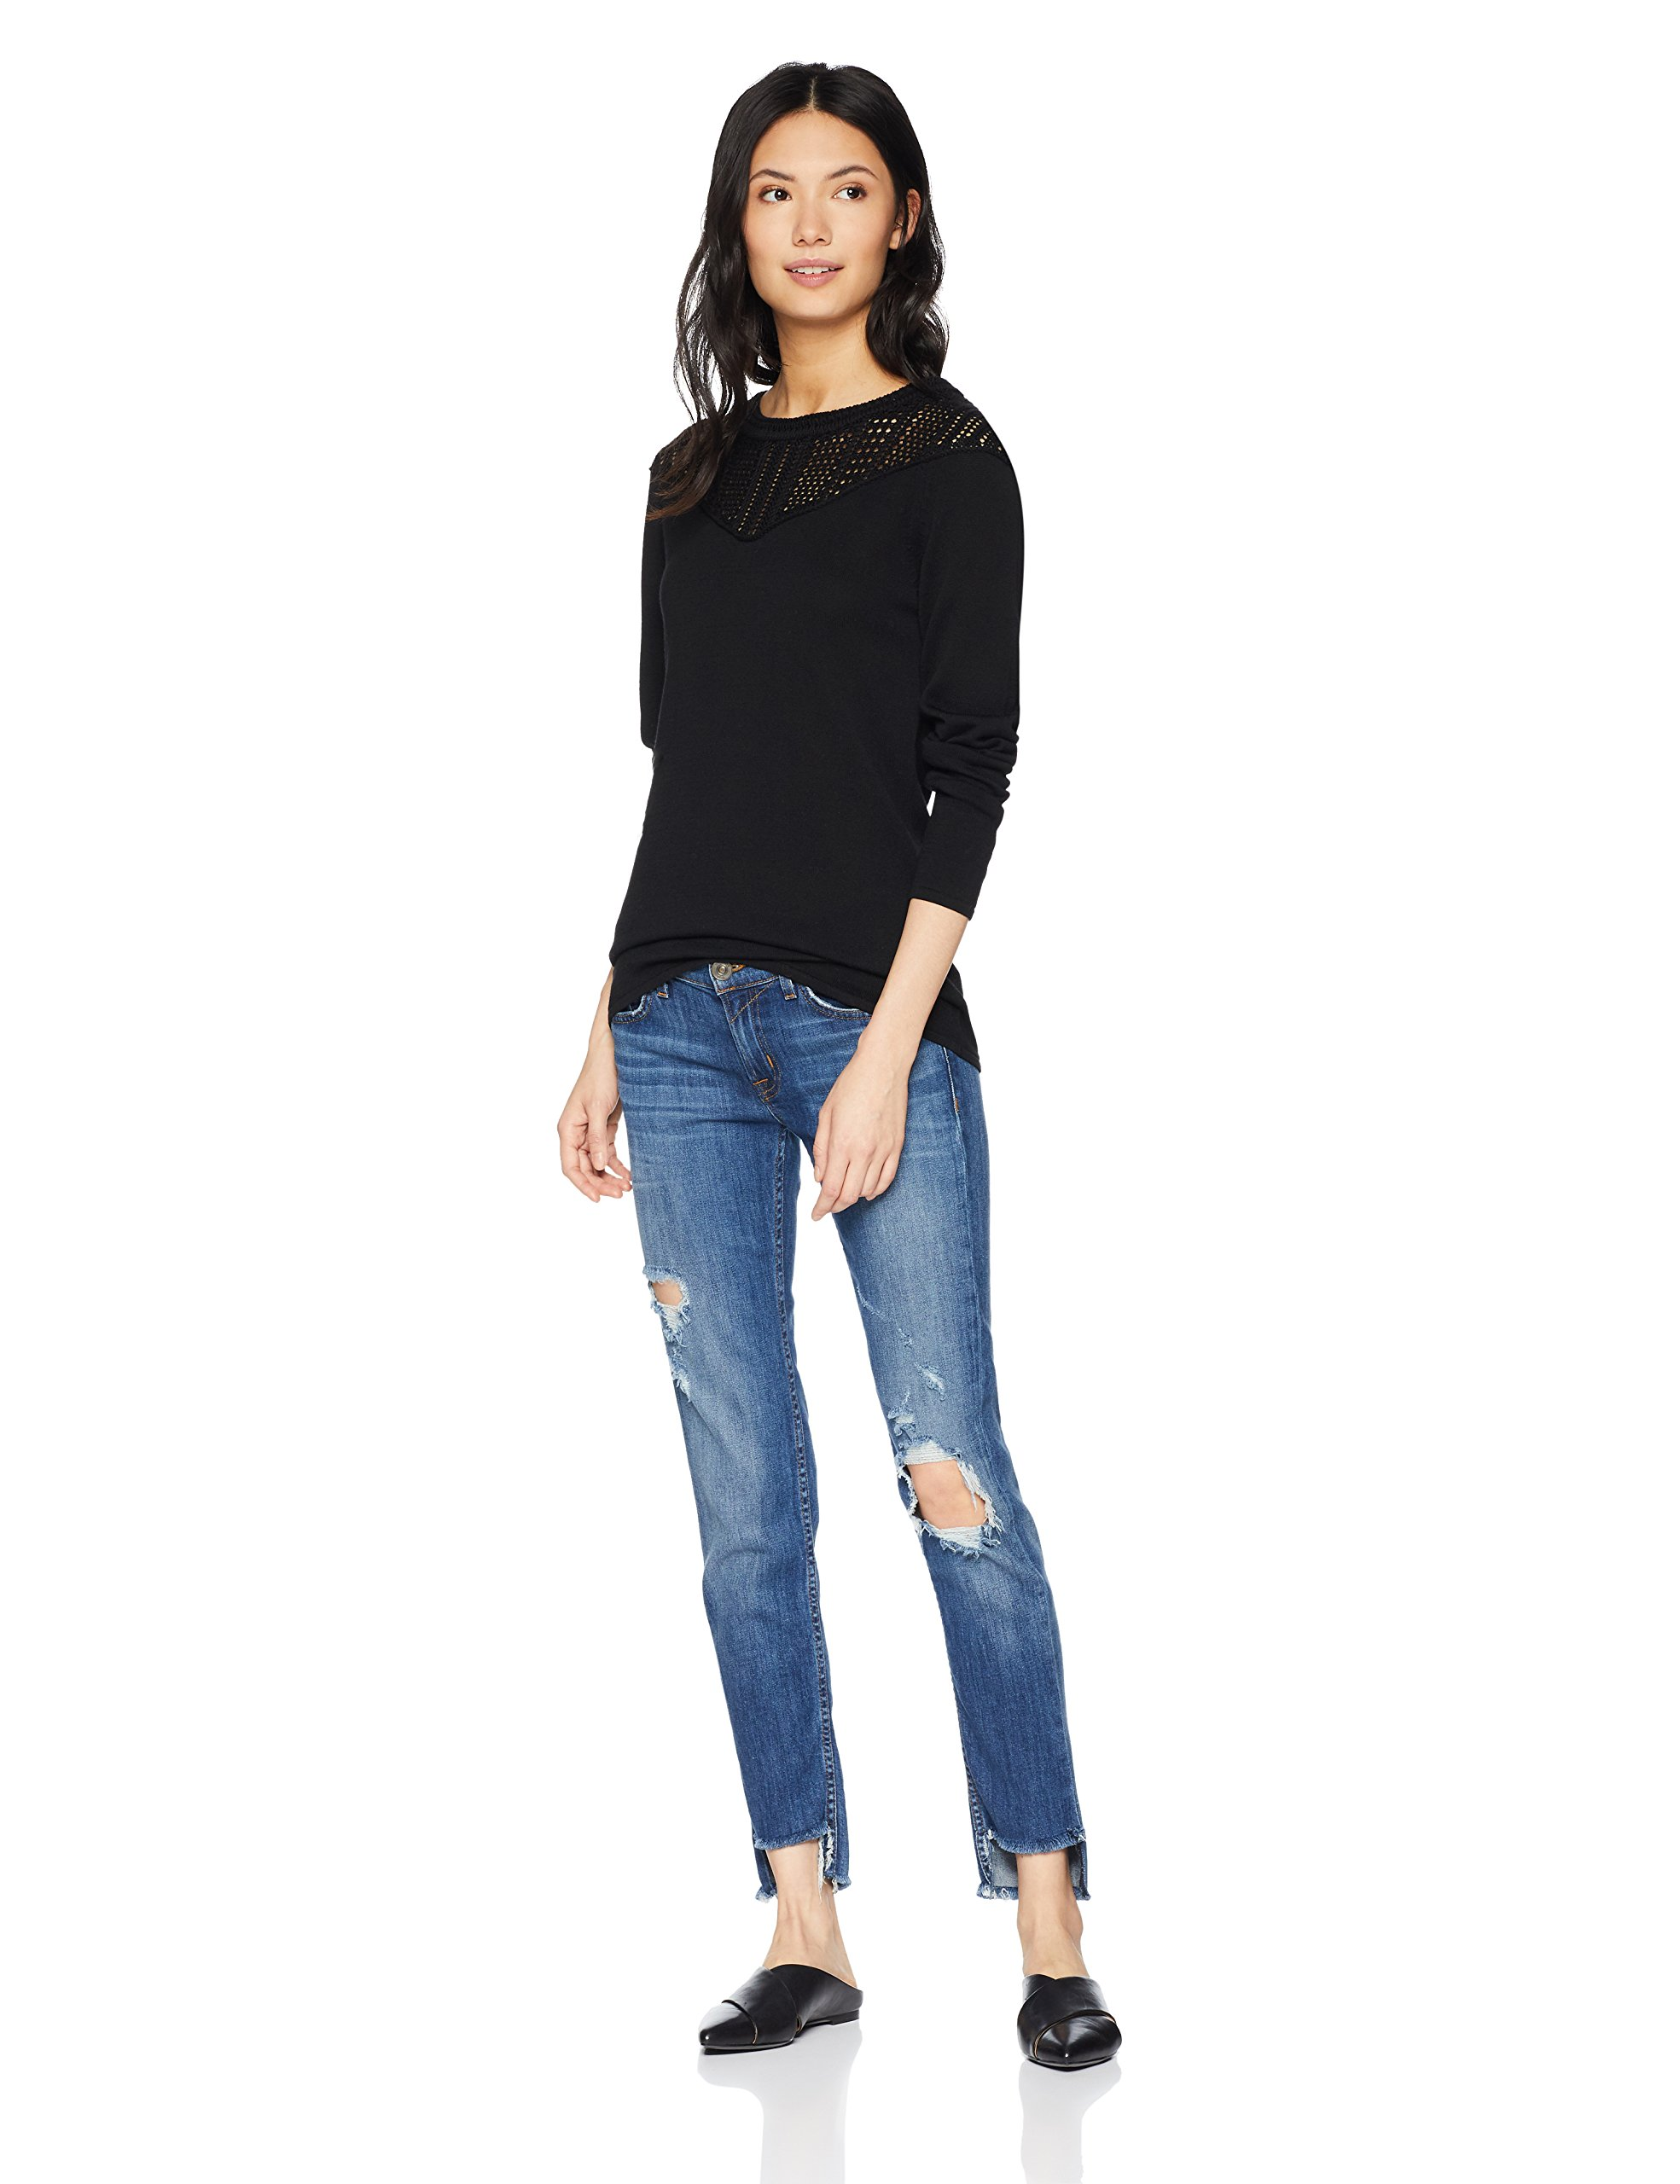 Cable Stitch Women's Pointelle Inset Sweater Black Large by Cable Stitch (Image #3)